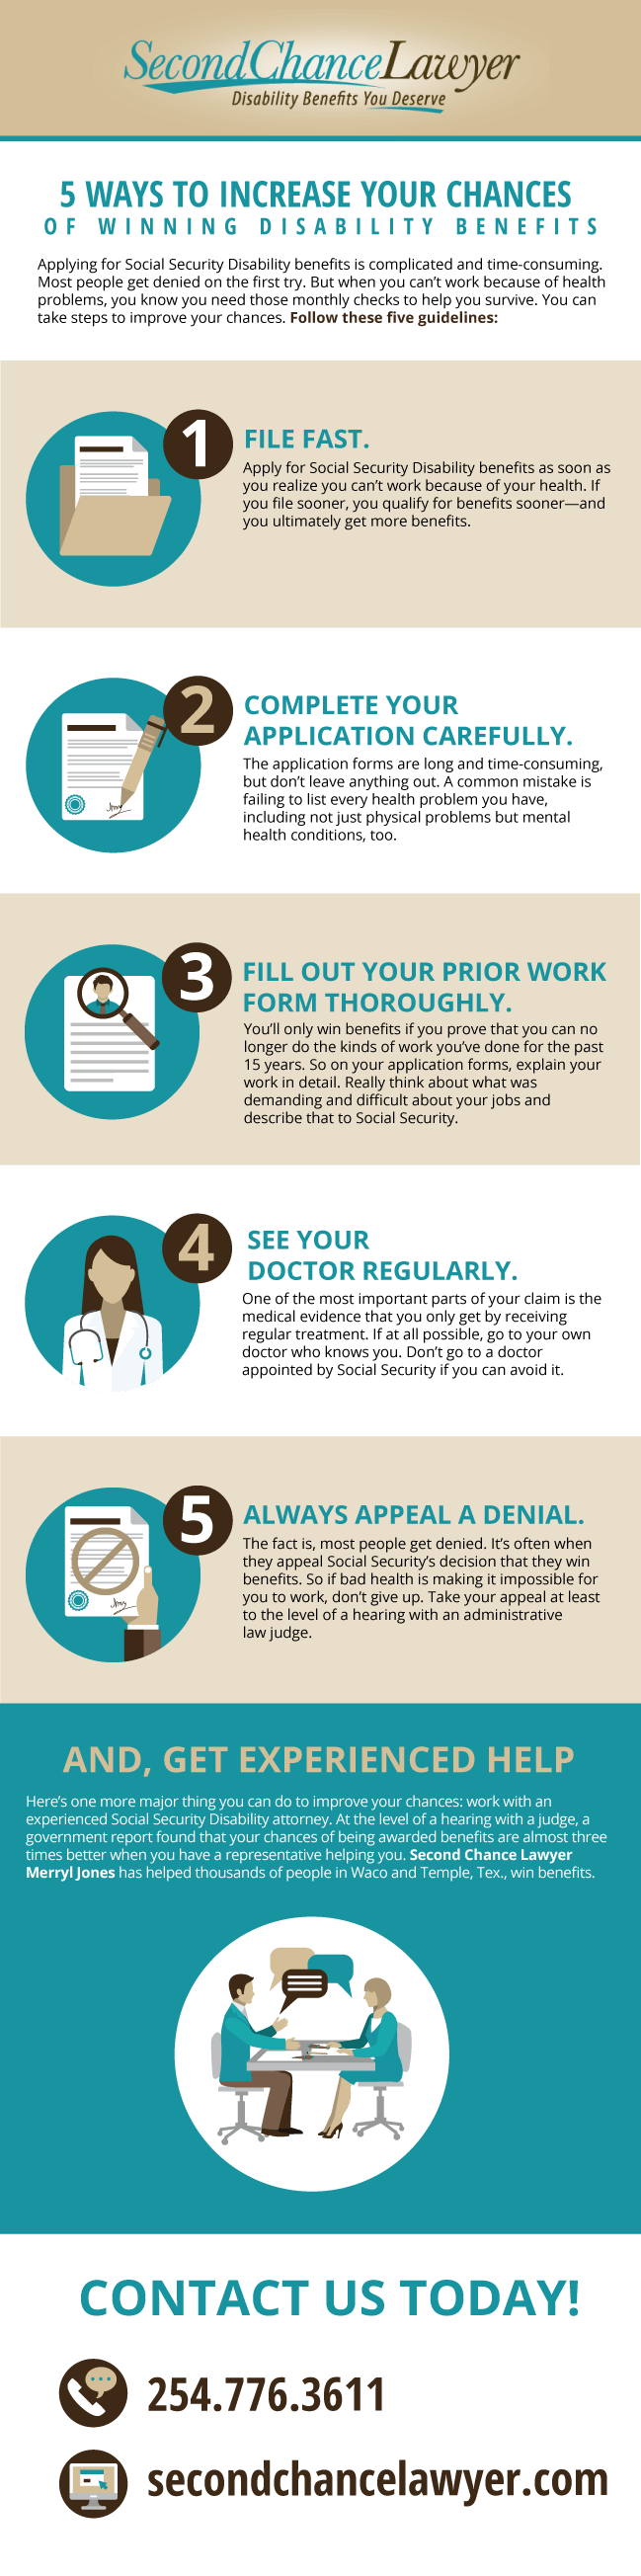 how to improve you chances of winning disability benefits infographic